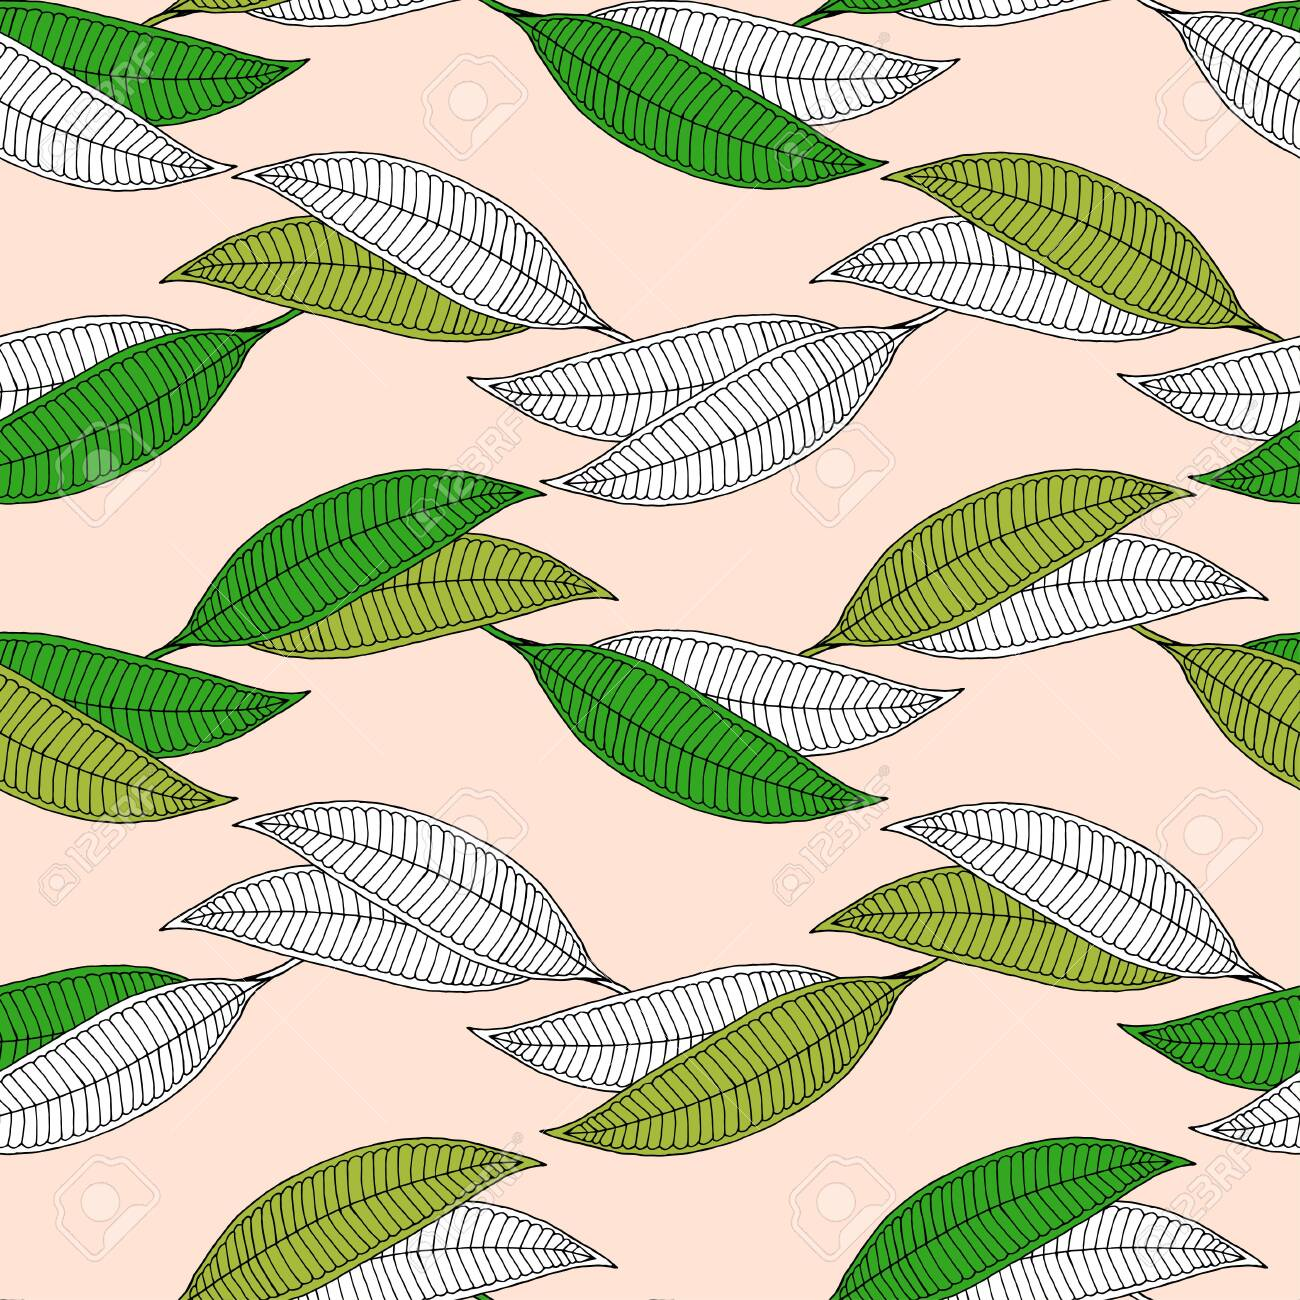 Plumeria horizontal abstract leaf seamless pattern. Isolated green and white leaves on a beige background. - 131296656